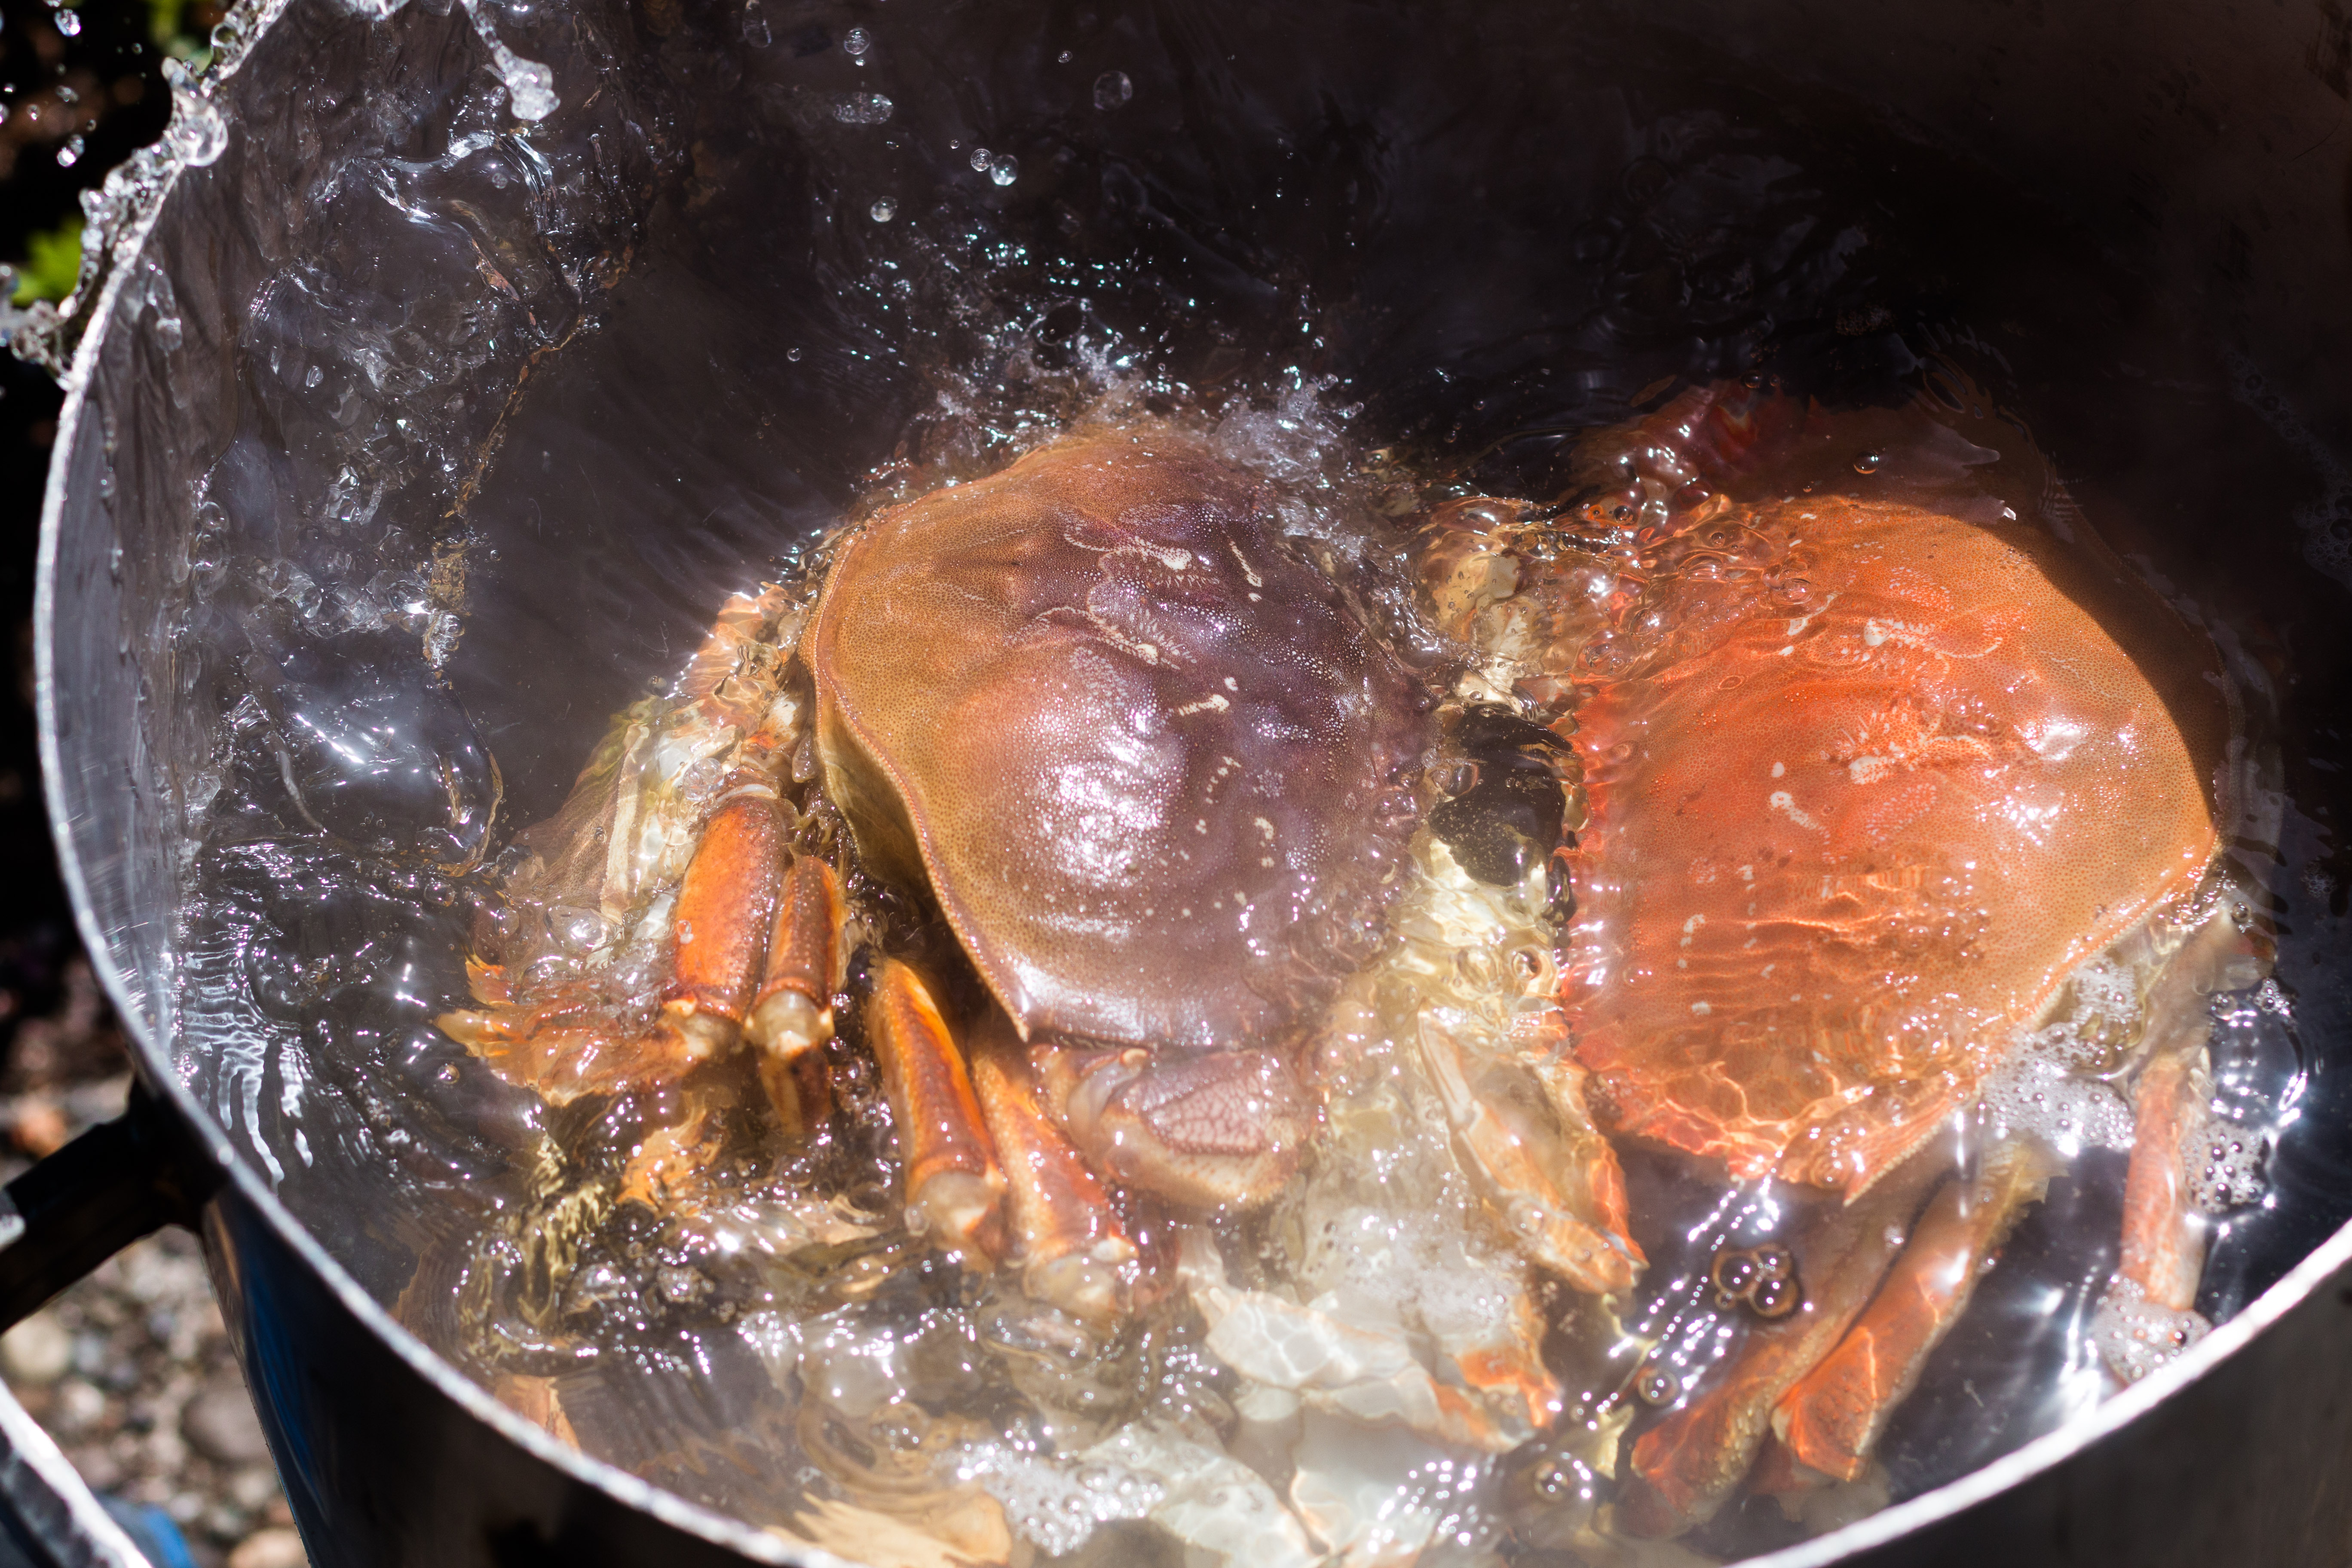 Learn how to prepare Dungeness crab + Video. | How to Cook | Seafood | Shellfish | Oregon | Fish & Wildlife | Ocean Life | www.megiswell.com